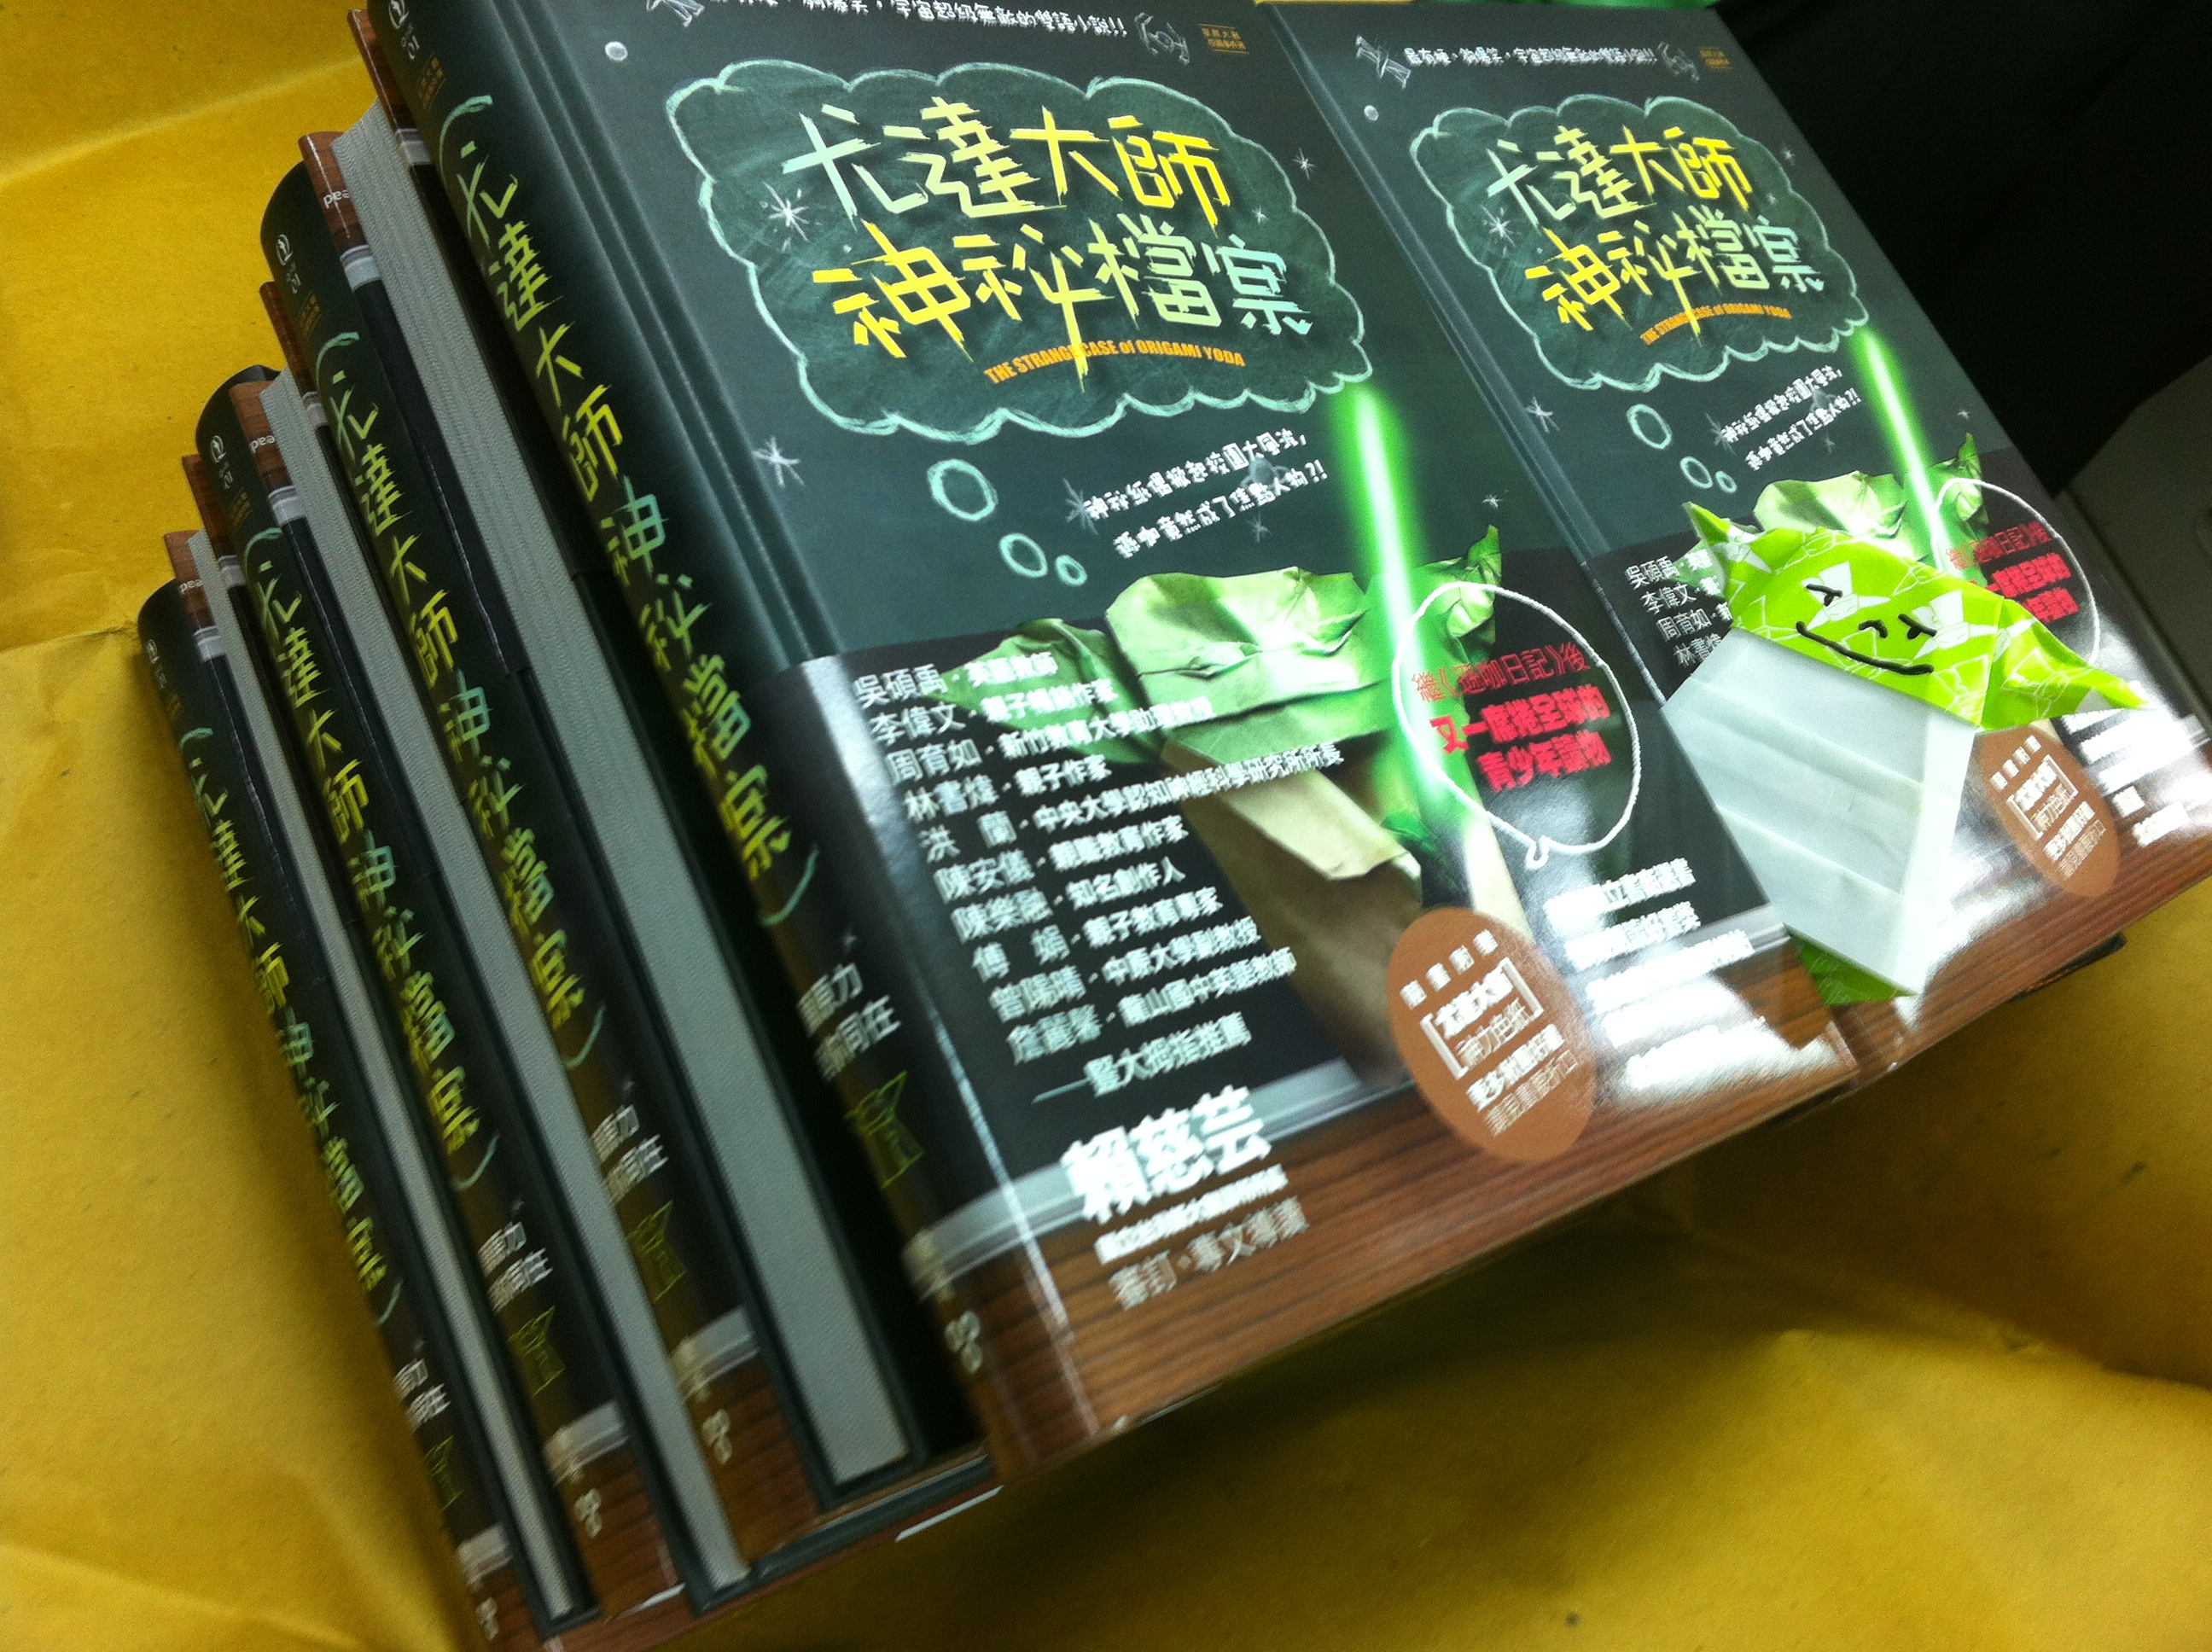 Tom Angleberger's Blog - Taiwan gets a version of Origami ... - photo#24